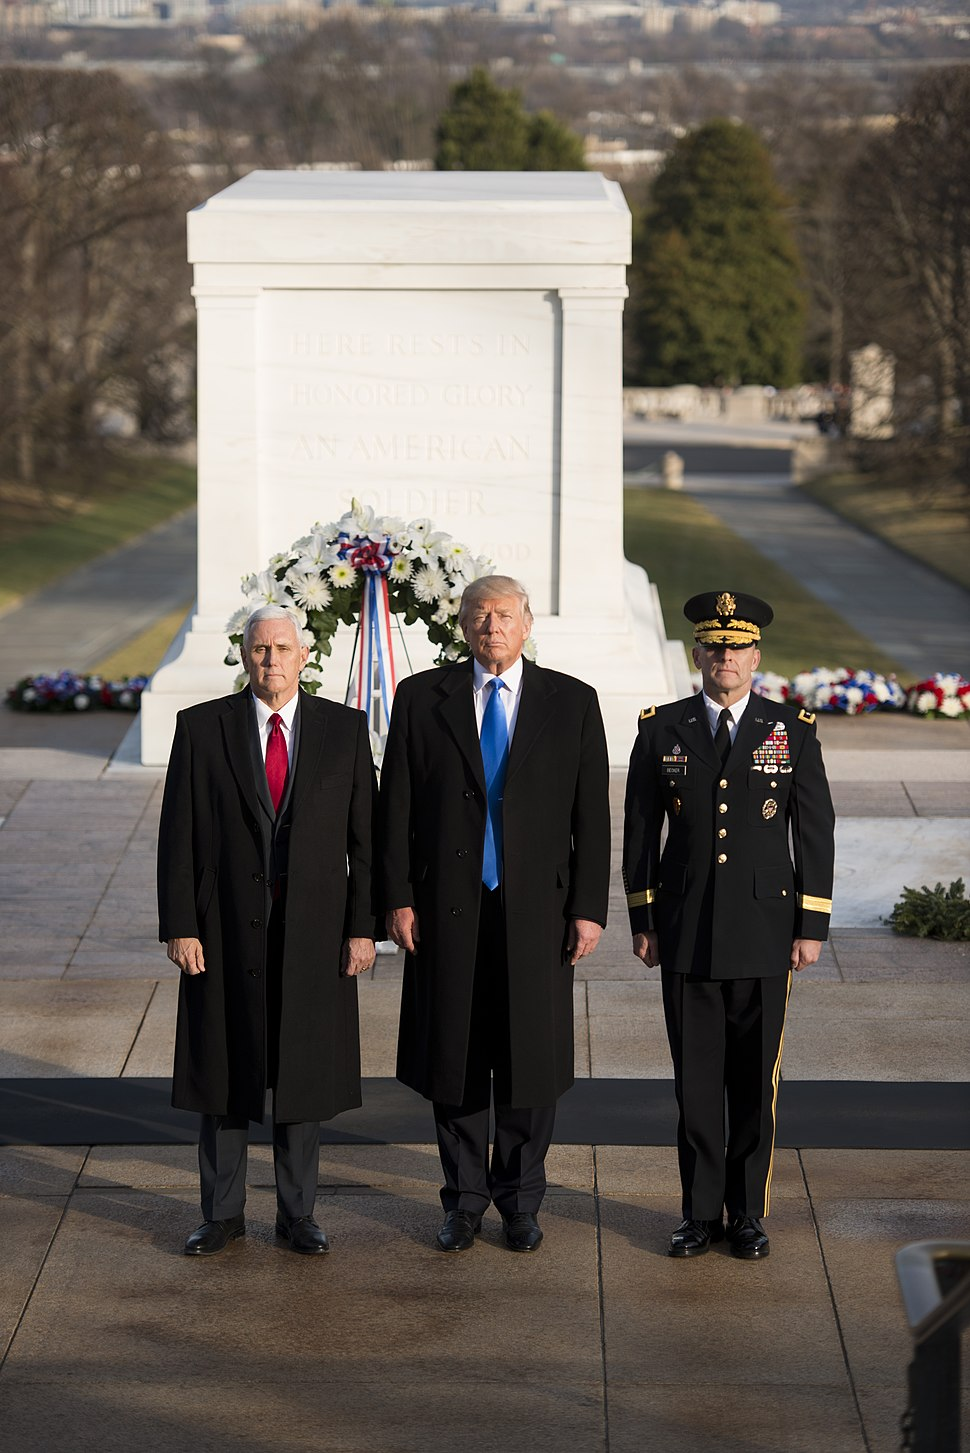 Mike Pence, Donald Trump, Bradley Becker wreath laying ceremony 01-19-17